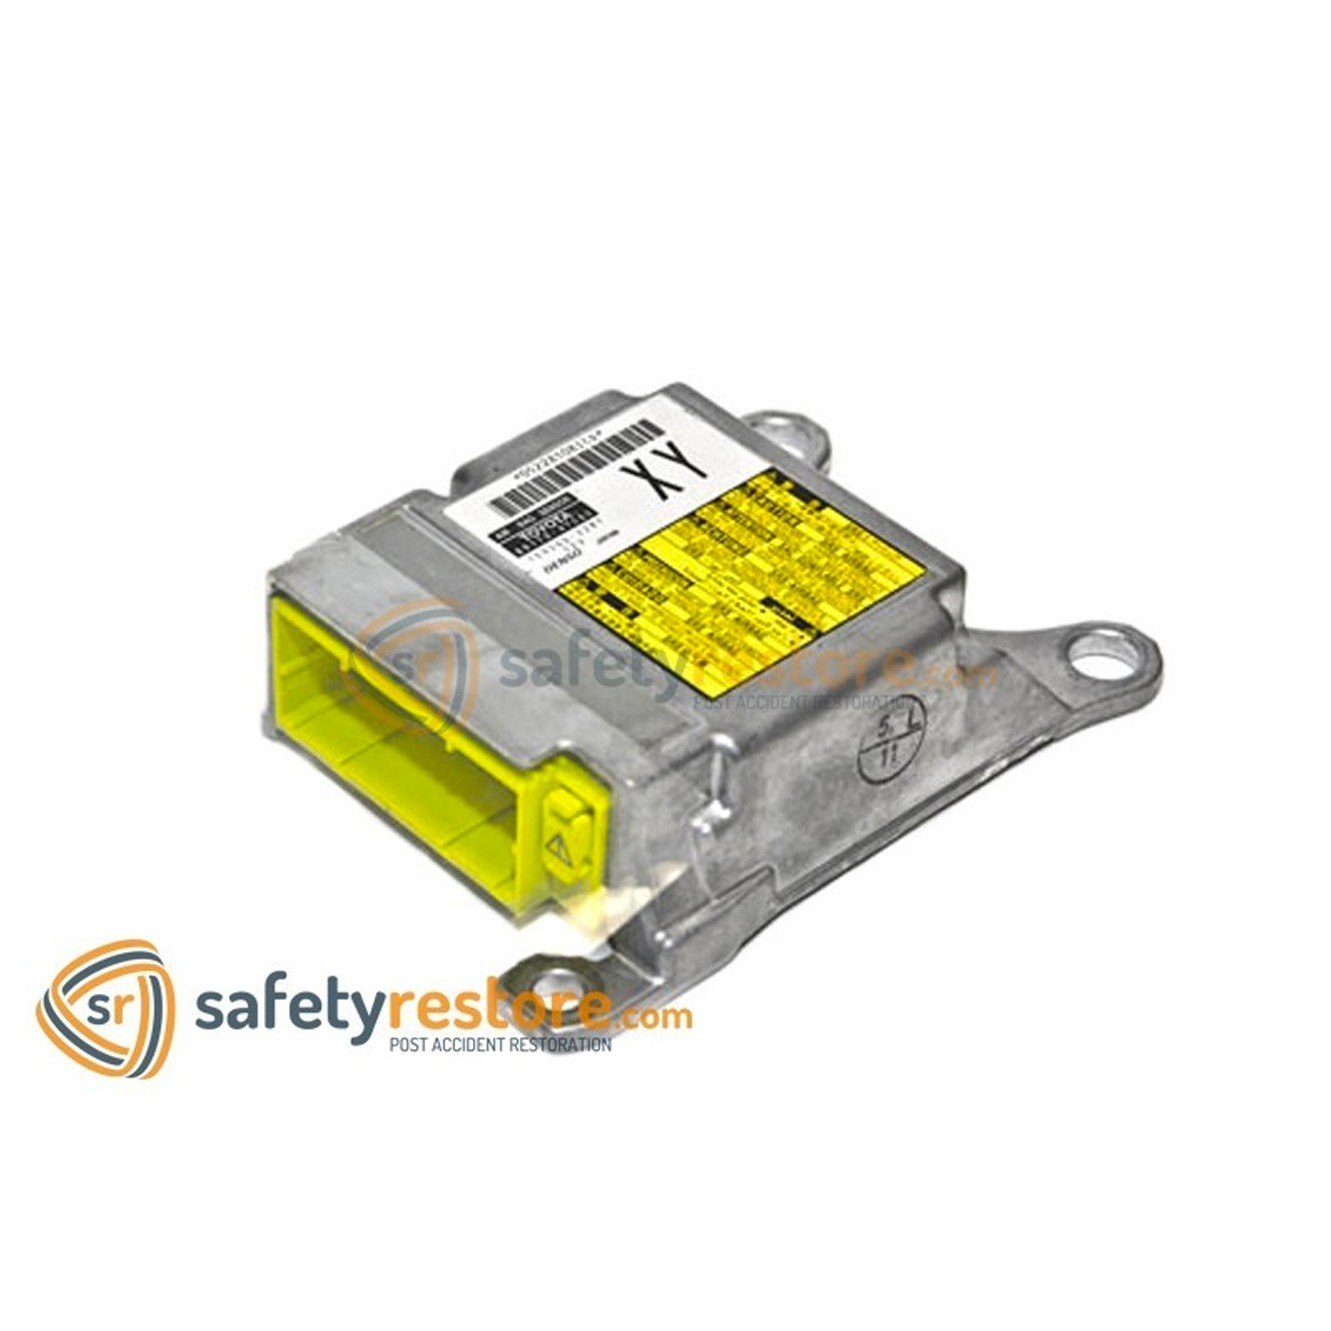 hight resolution of 2006 toyota sienna airbag fuse box 2013 wiring diagram rows2006 toyota sienna airbag fuse box 2013